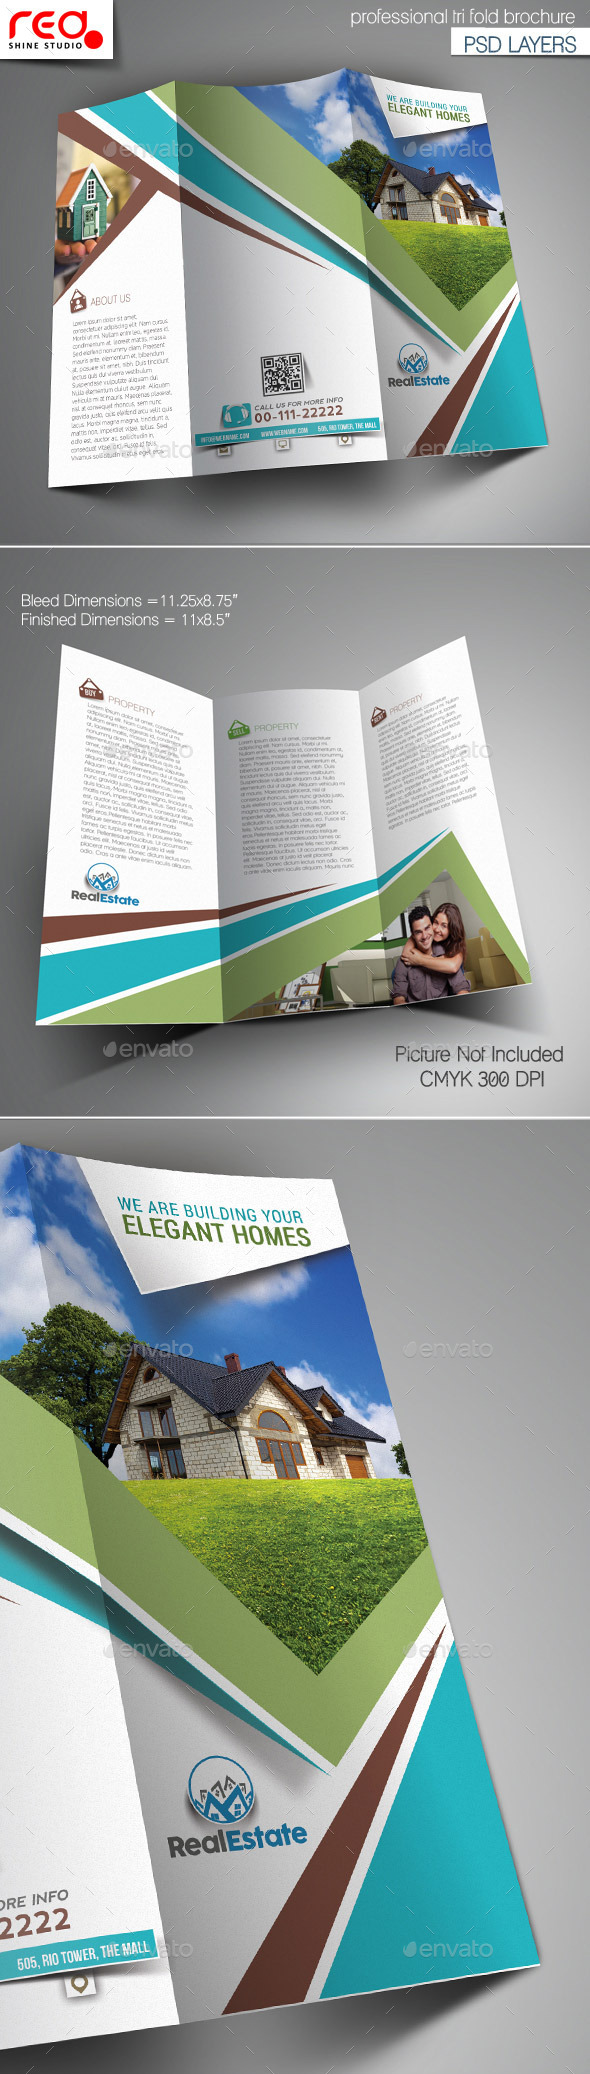 GraphicRiver Elegant Homes Trifold Brochure Template 10701121